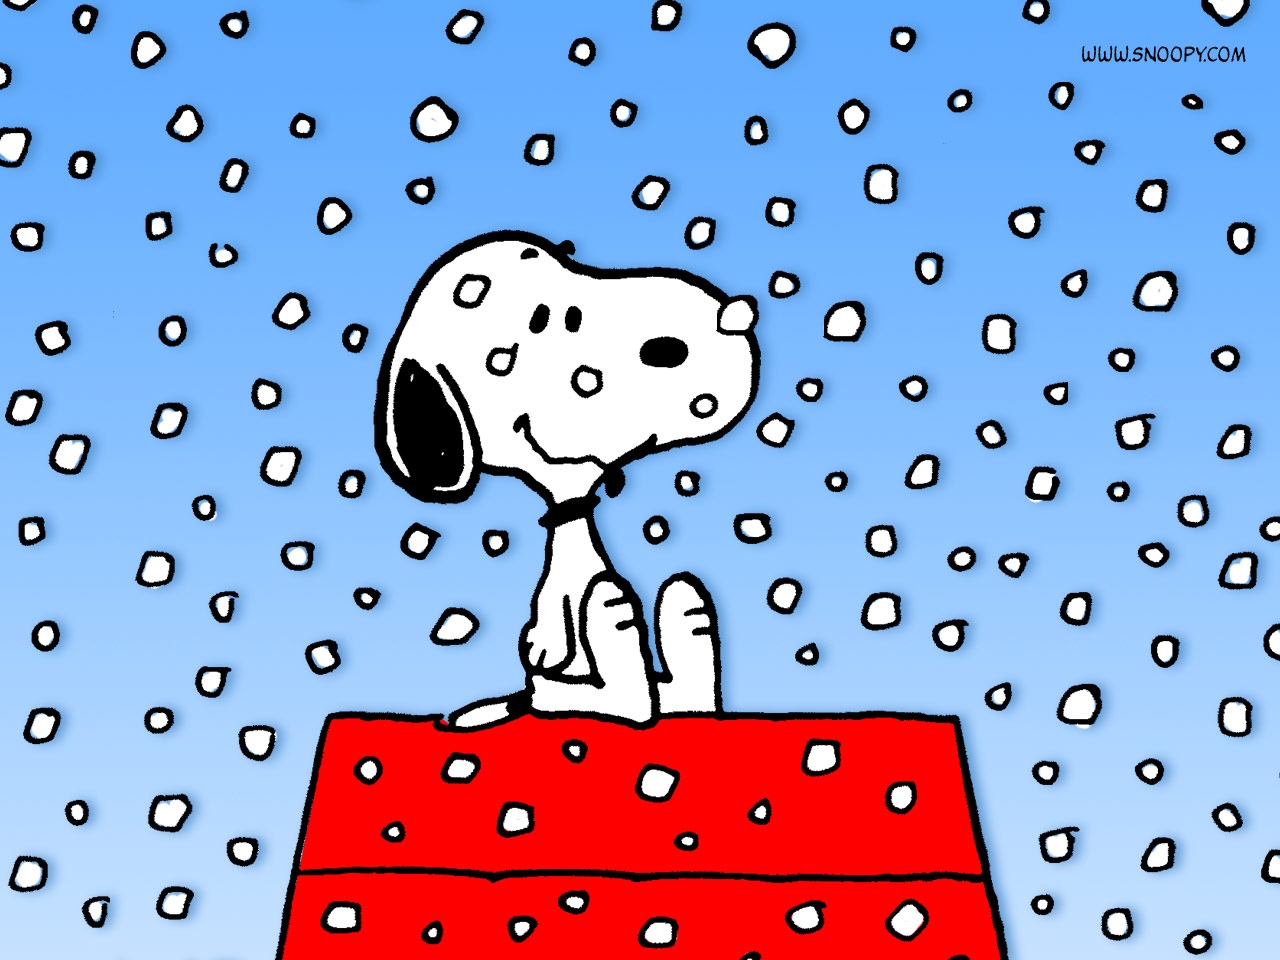 snoopy dancing pictures - Snoopys Christmas Album